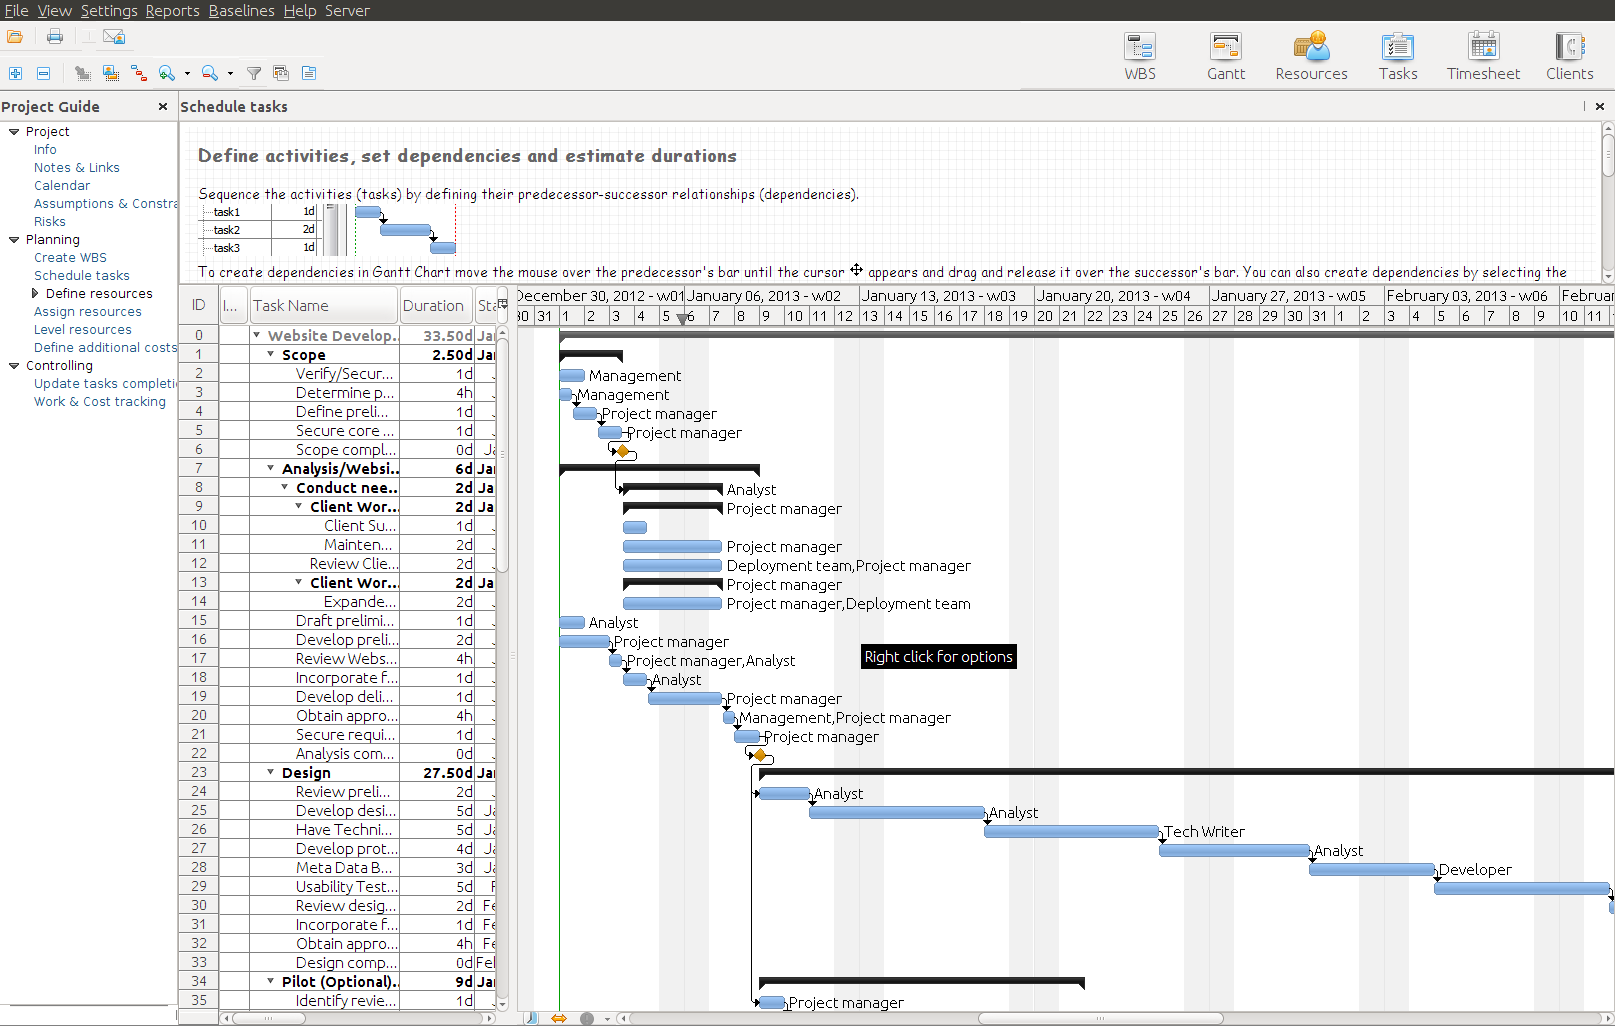 RationalPlan Project Viewer for Linux 4.16.0 Screen shot